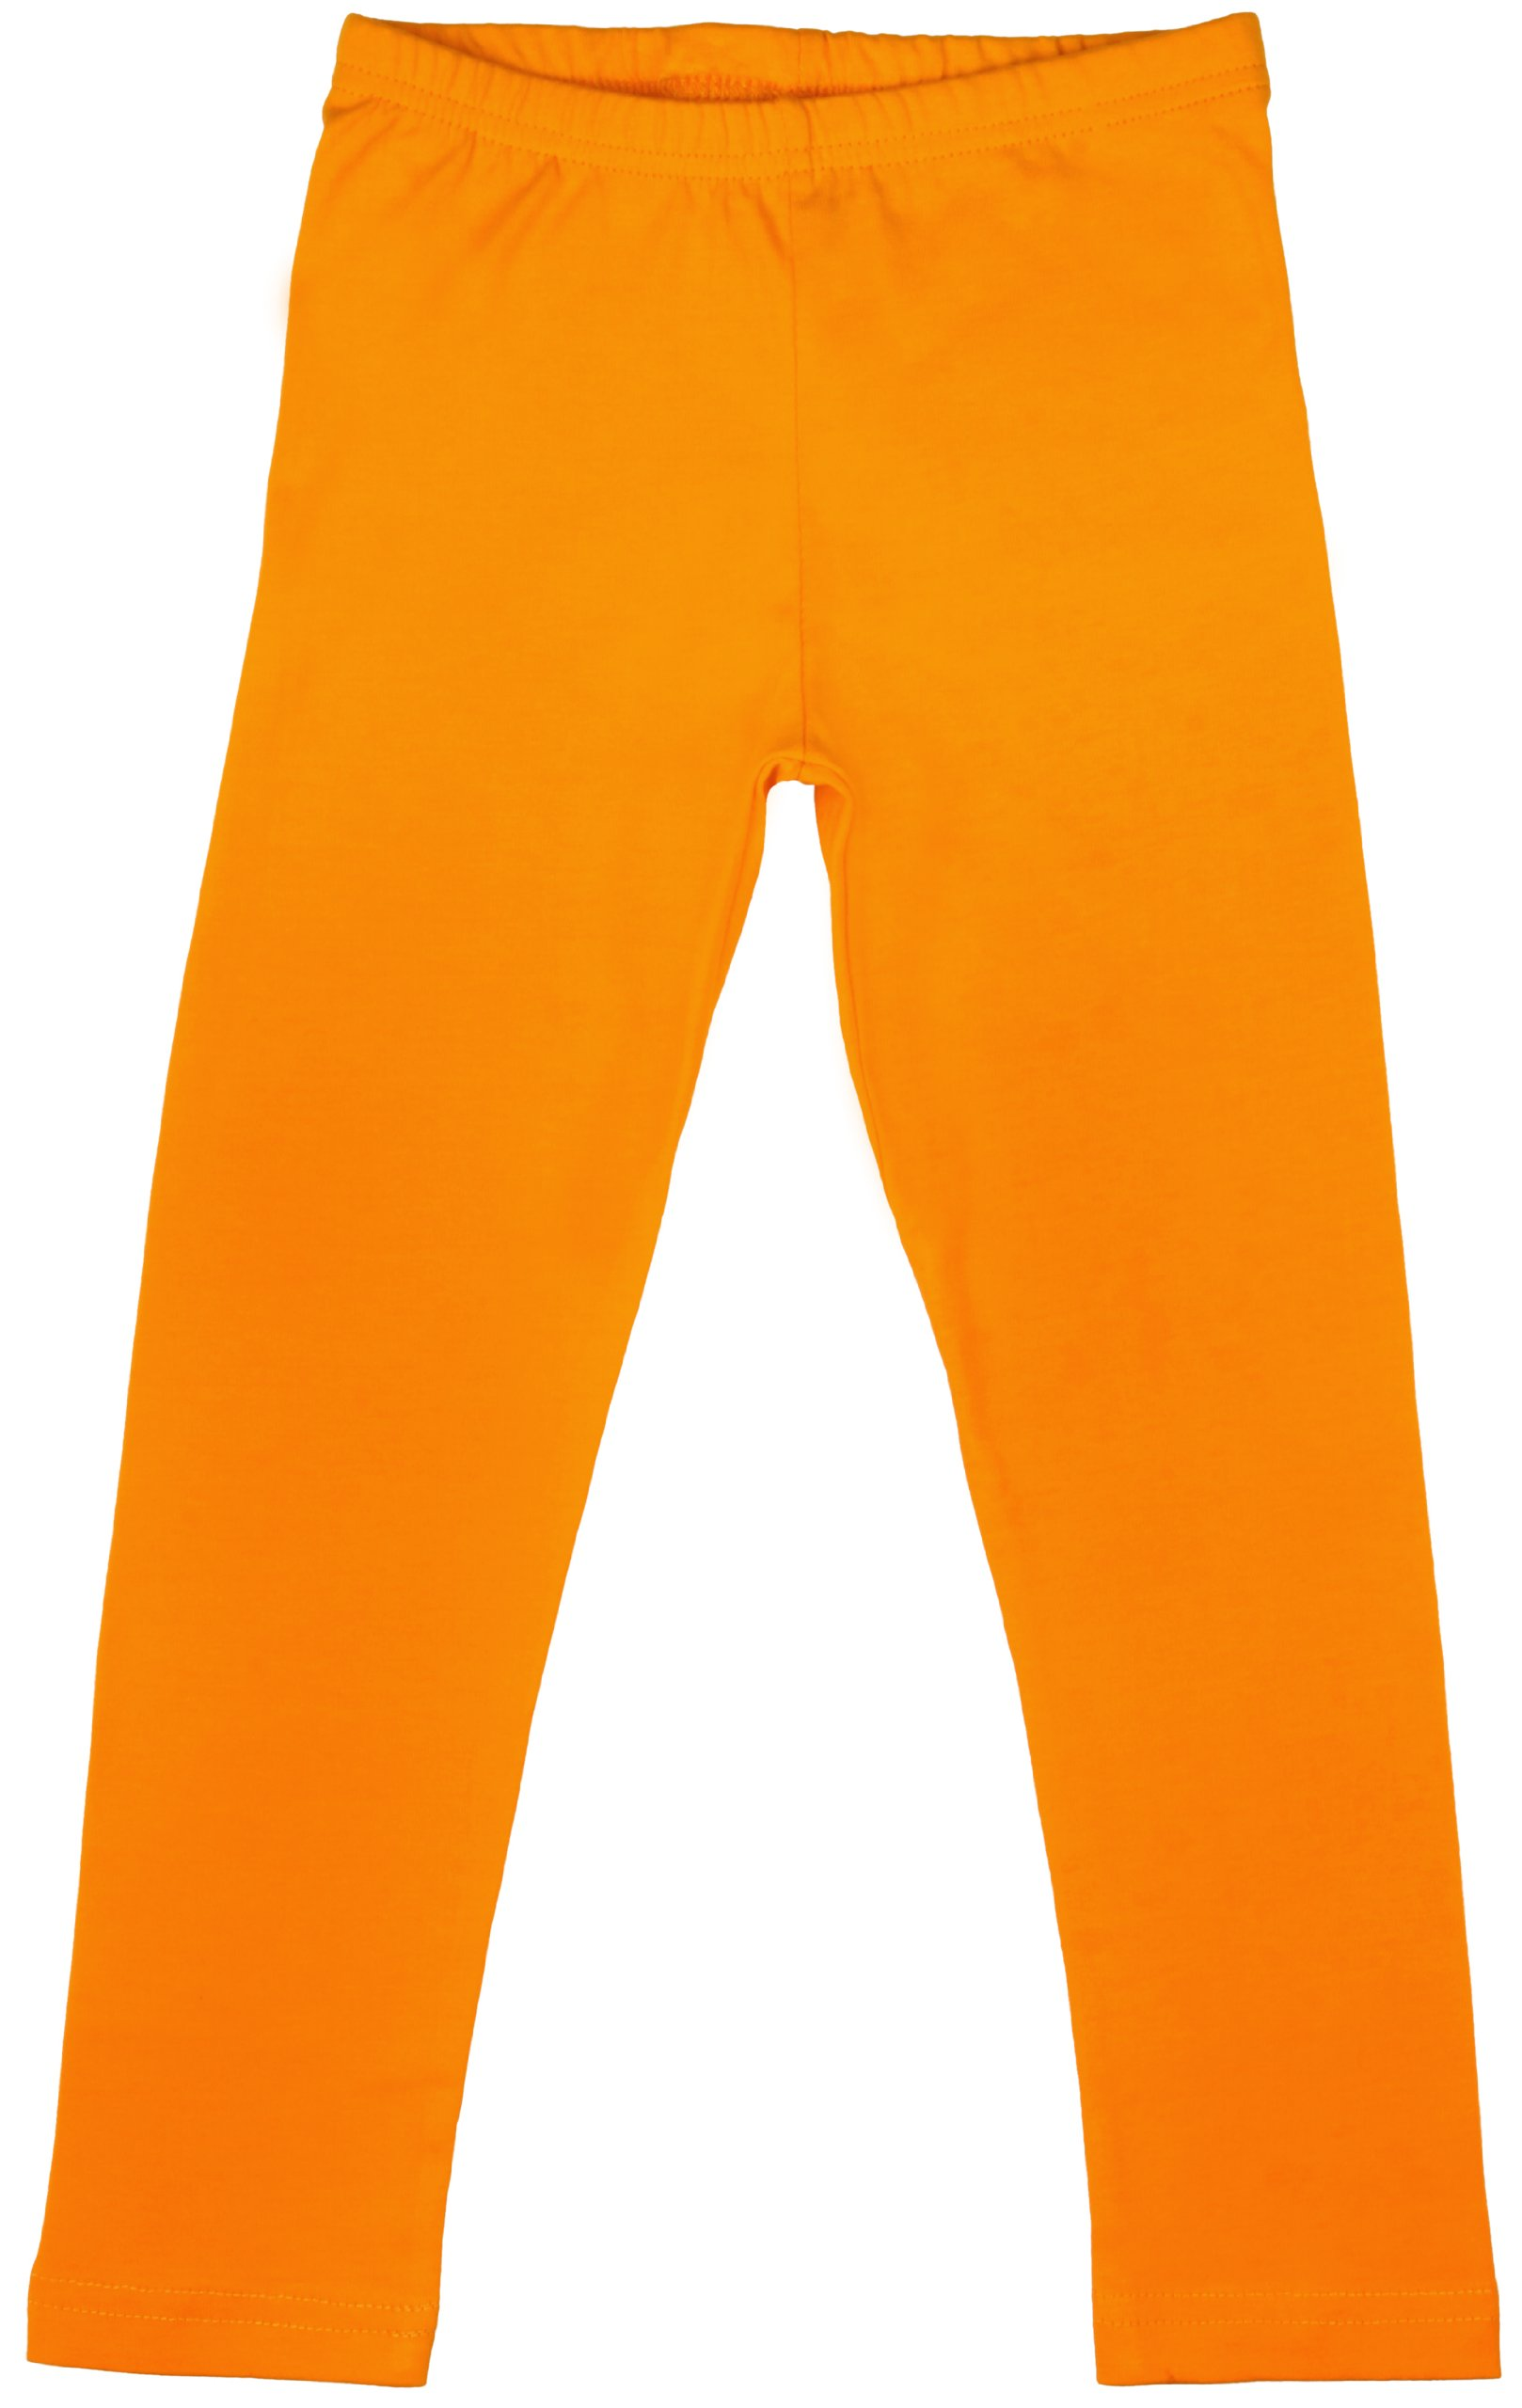 Back From Bali Little Girls Leggings Orange Yellow X-Small